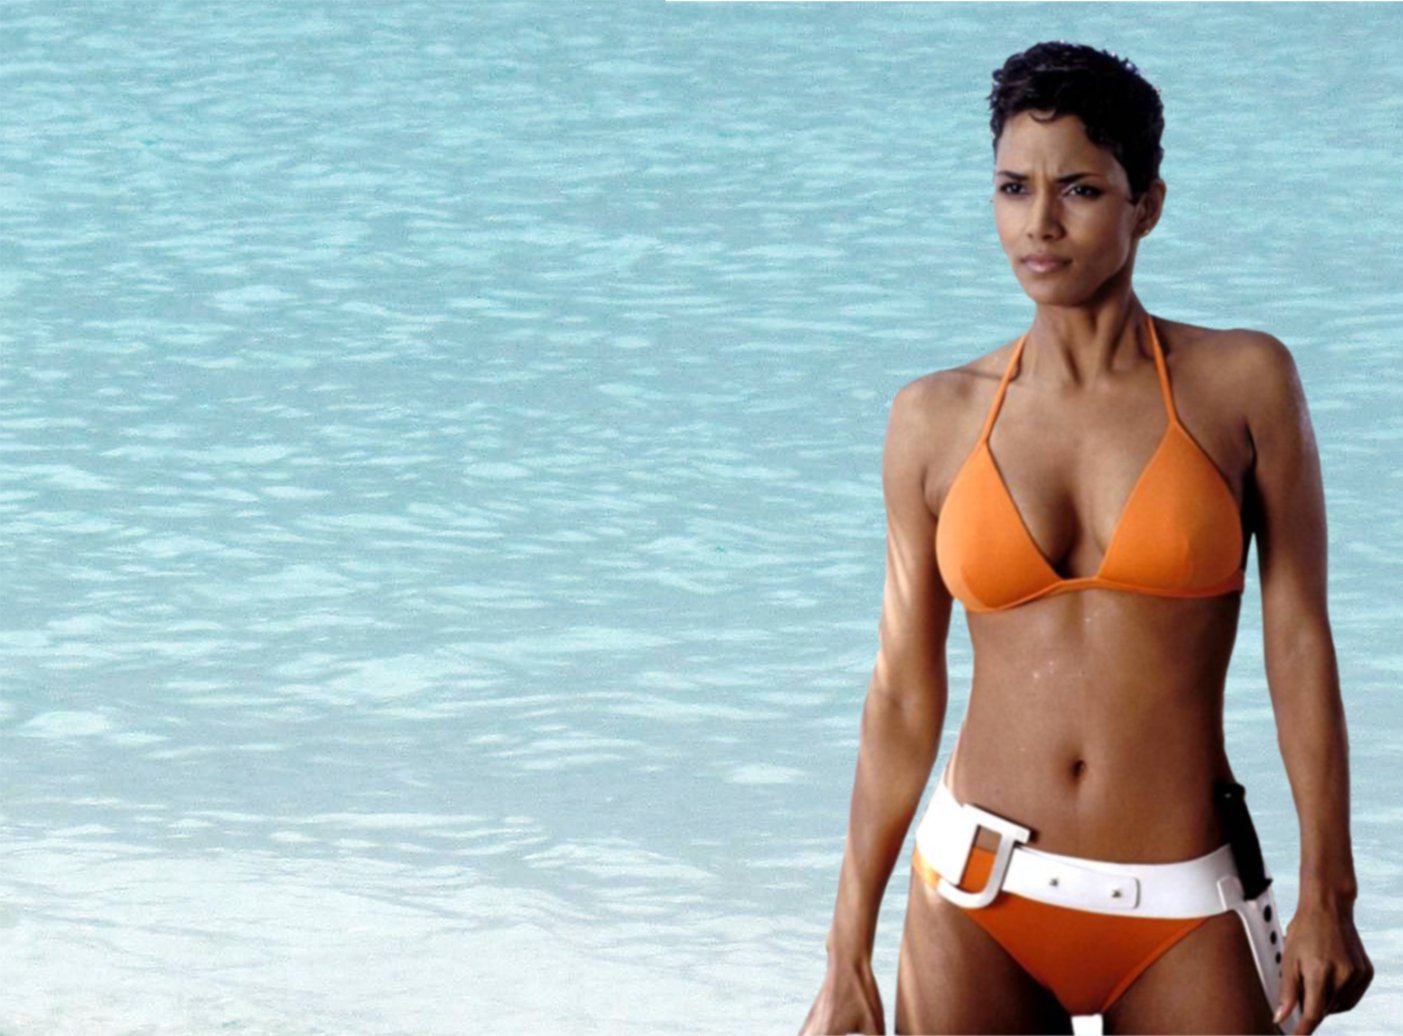 Jinx Halle Berry Bond girl Die Another Day